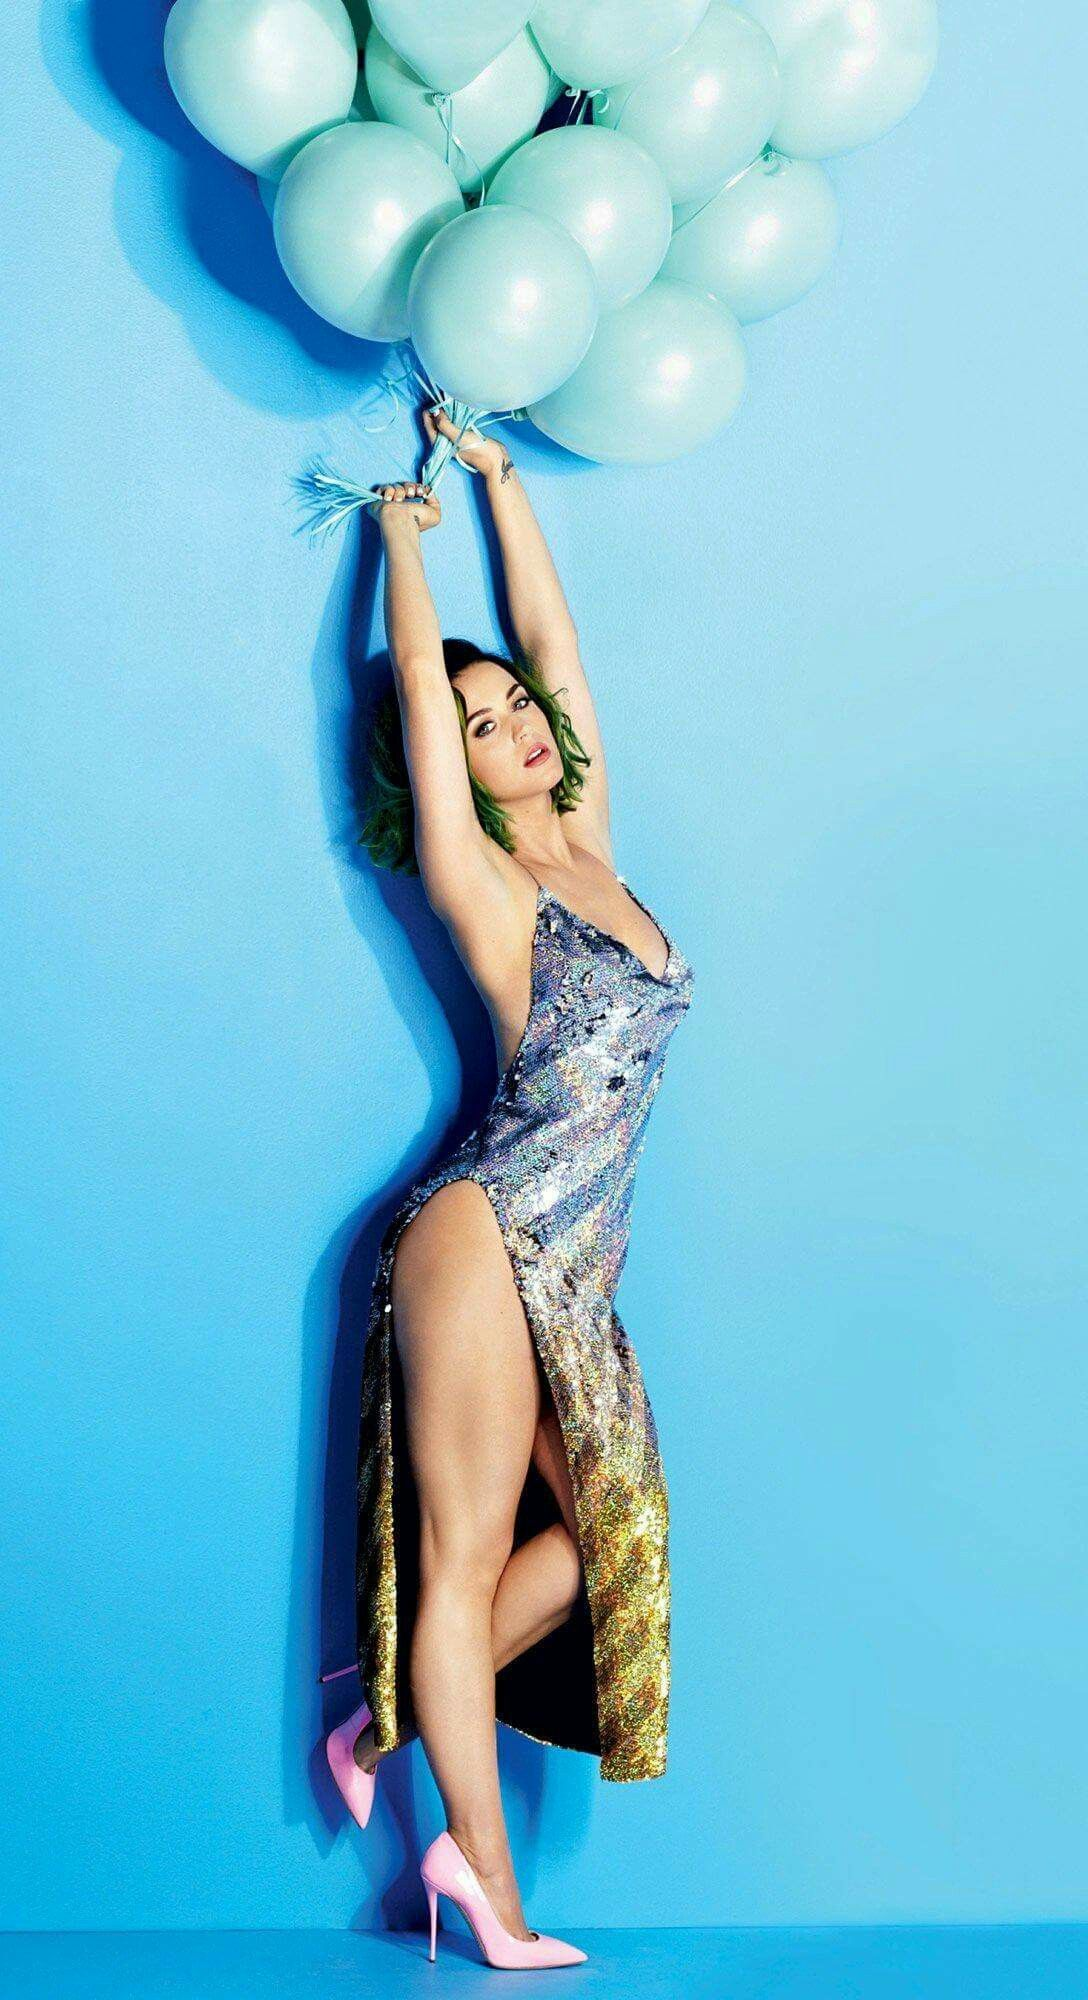 Katy Perry katy perry in 2019 Katy perry pictures